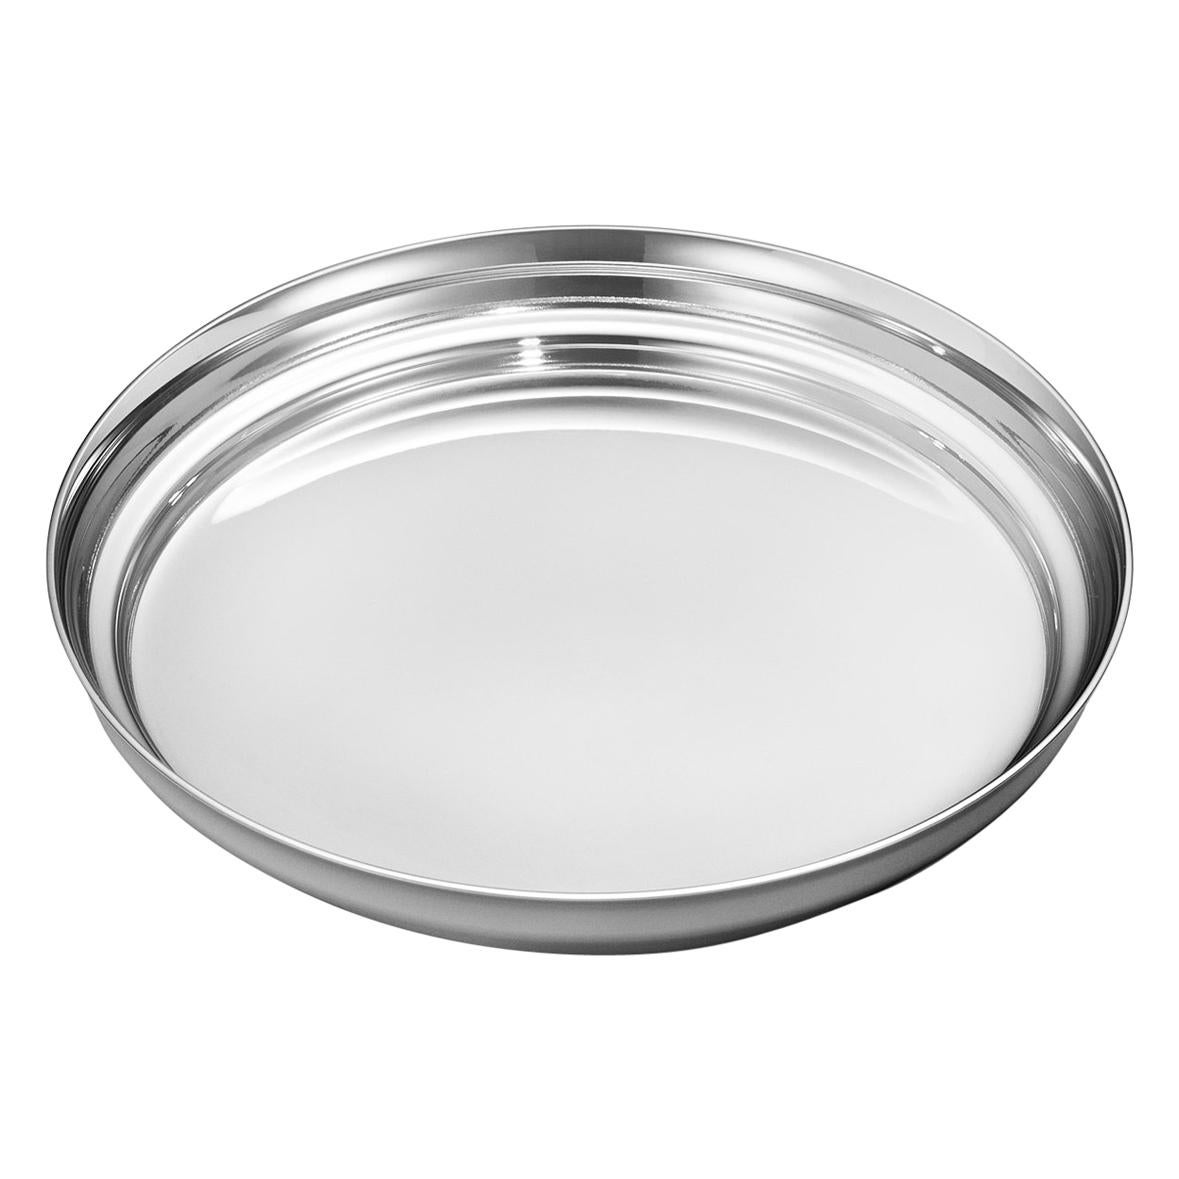 Manhattan Wine Coaster in Stainless Steel by Georg Jensen